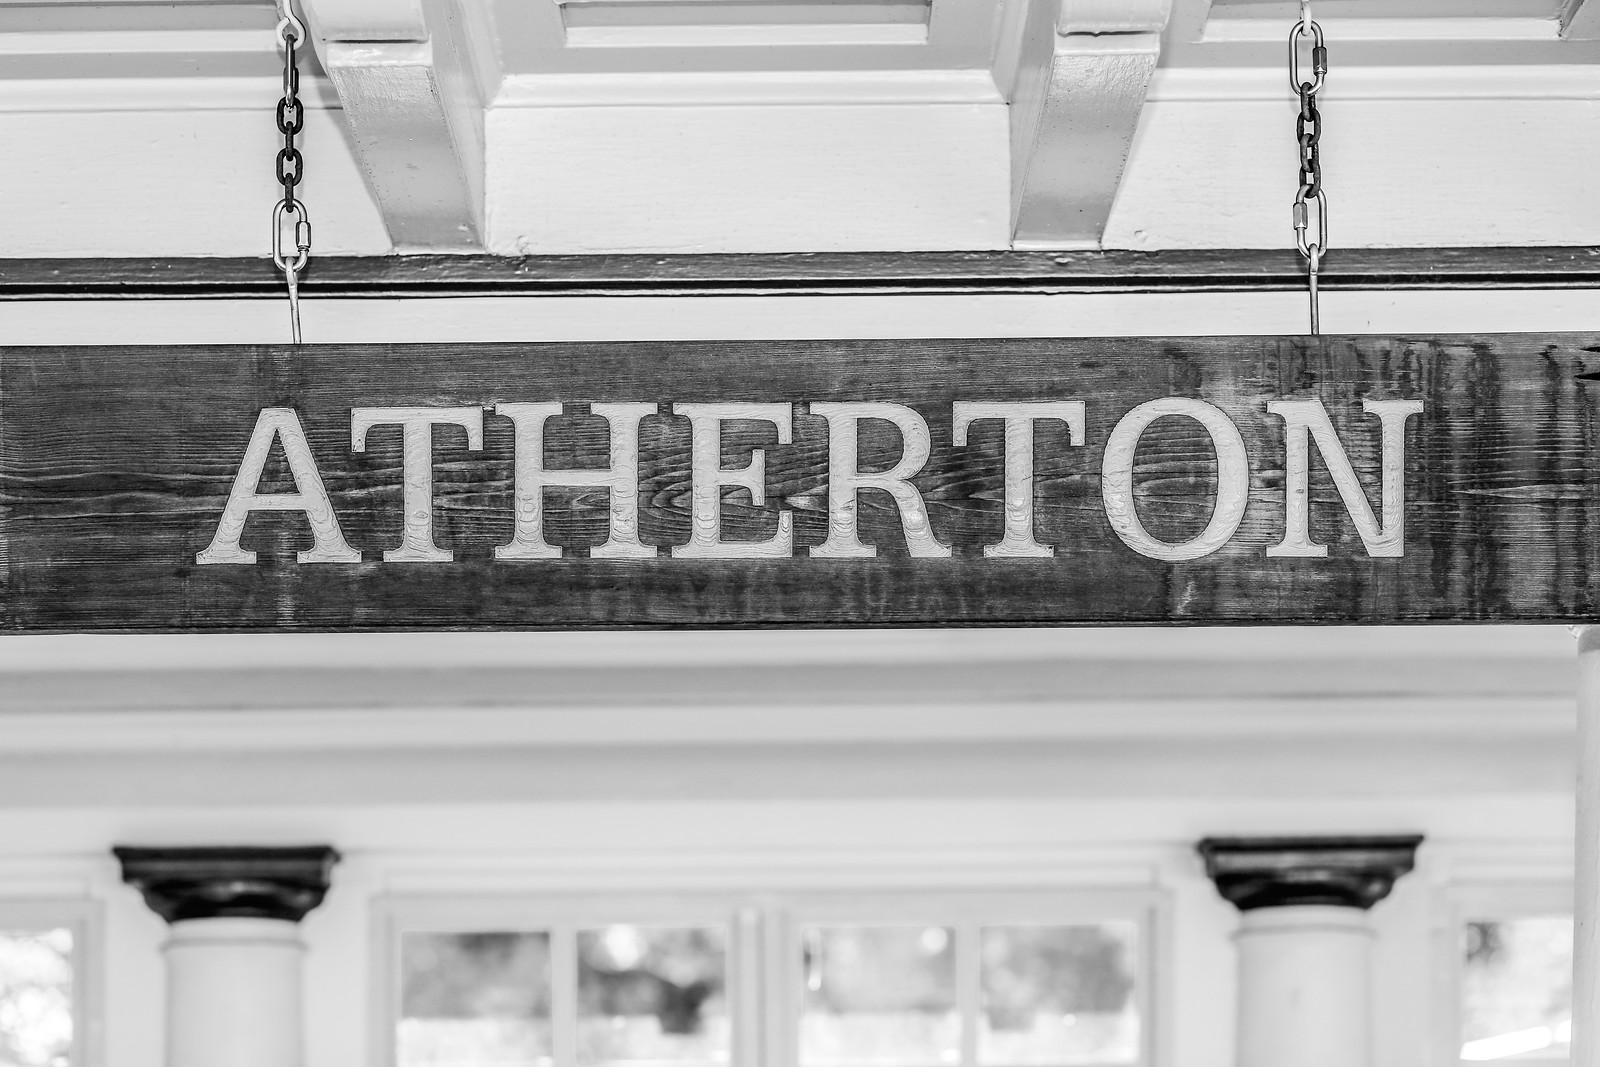 Town of Atherton Blu Skye Media-7089-X3.jpg